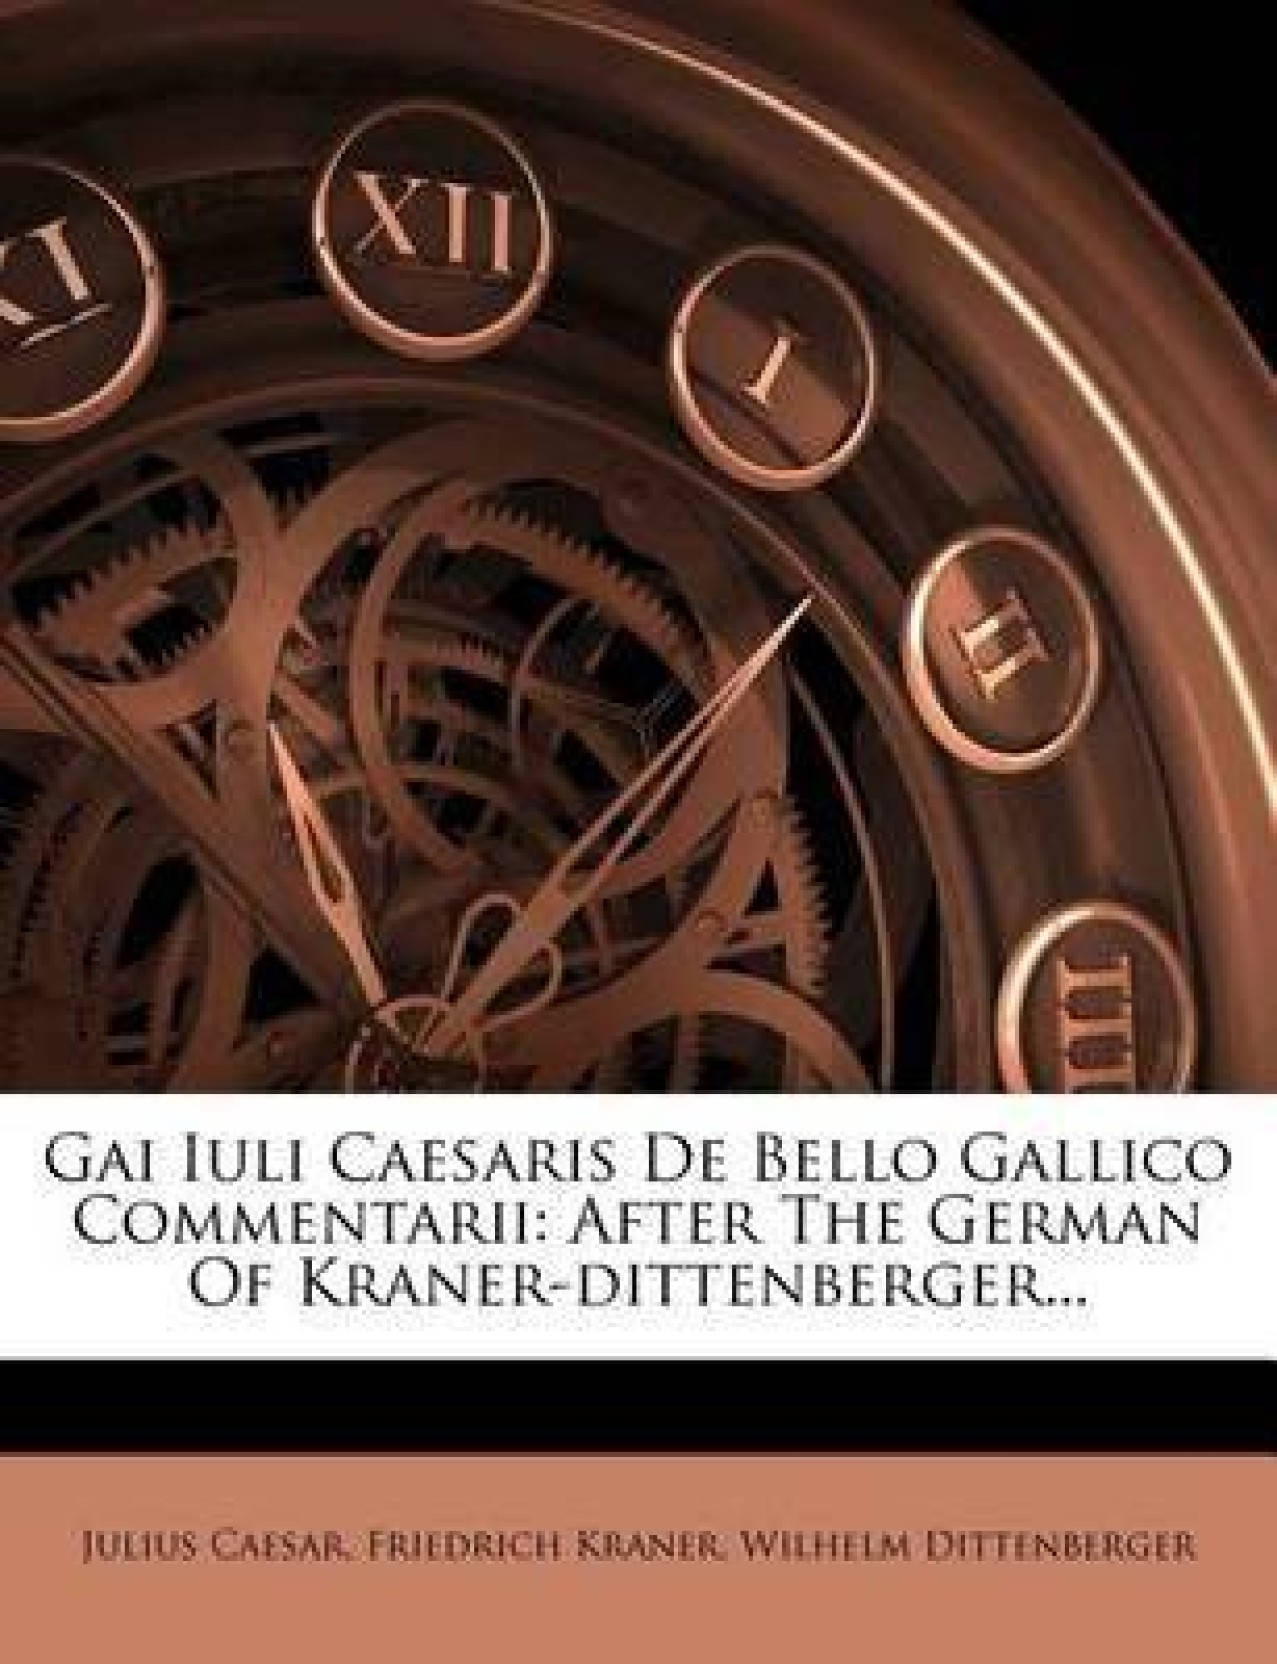 Gai Iuli Caesaris De Bello Gallico Commentarii Buy Gai Iuli